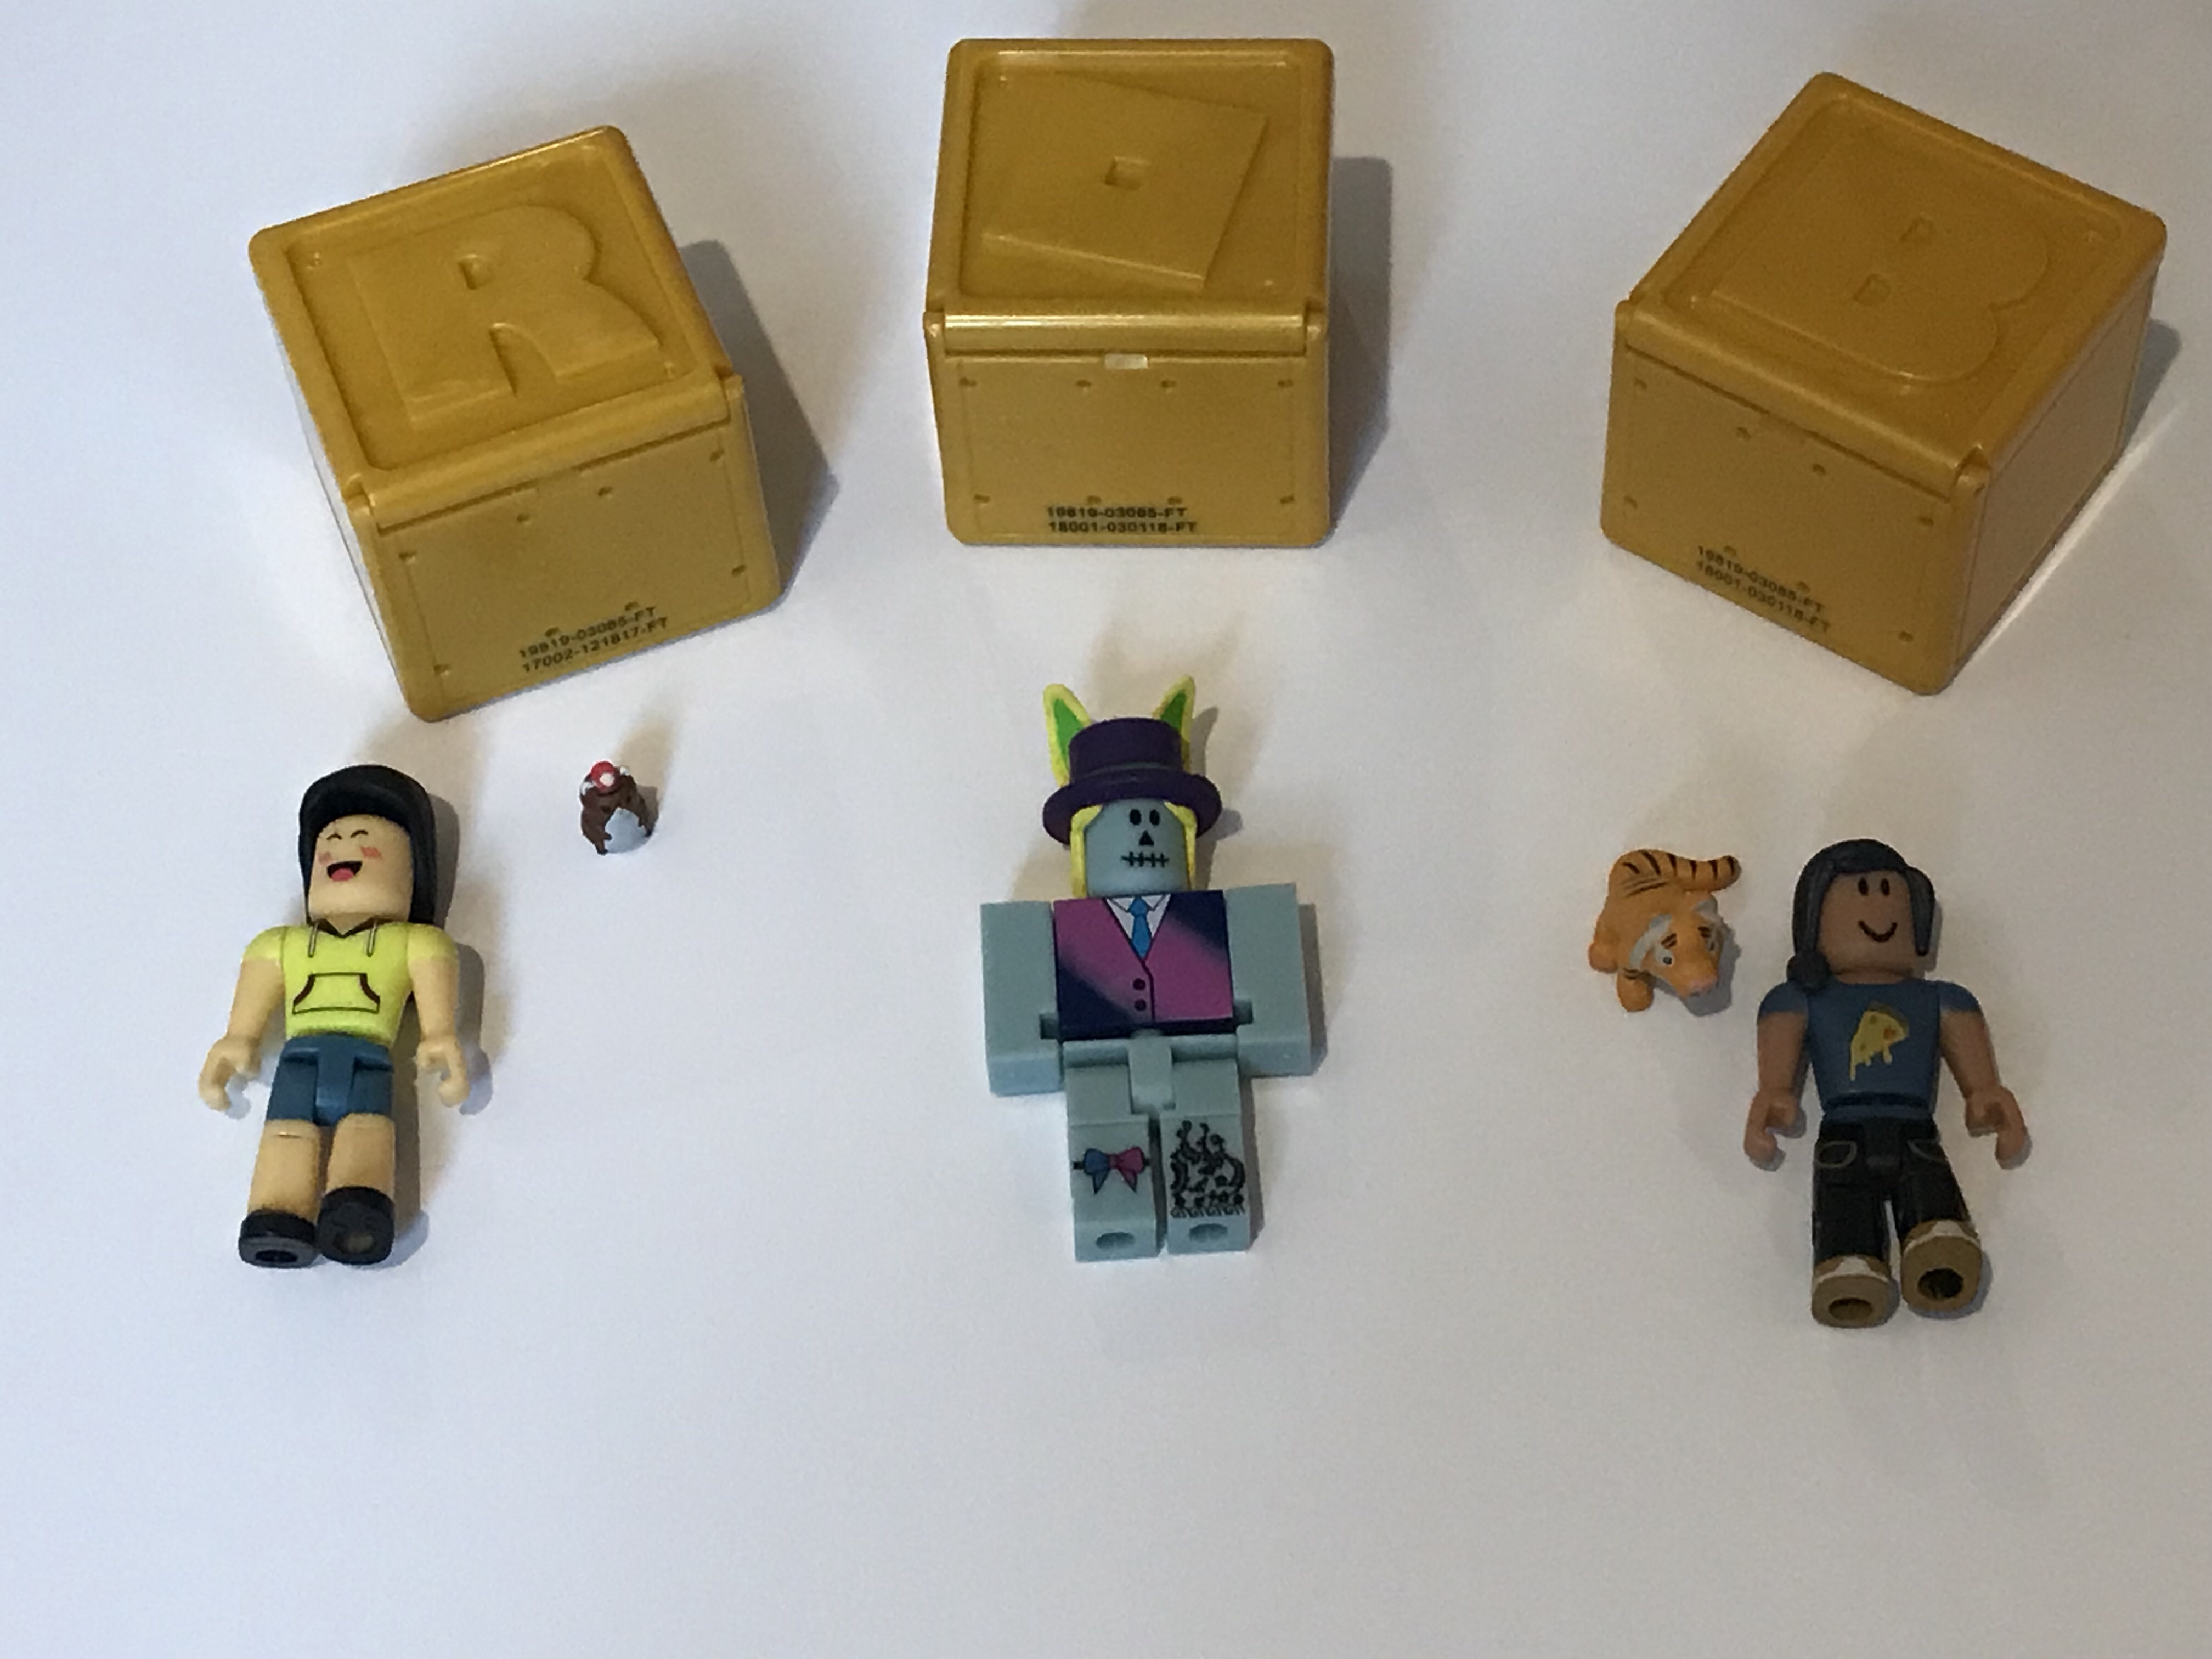 Reviewing The Roblox Celebrity Toy Range